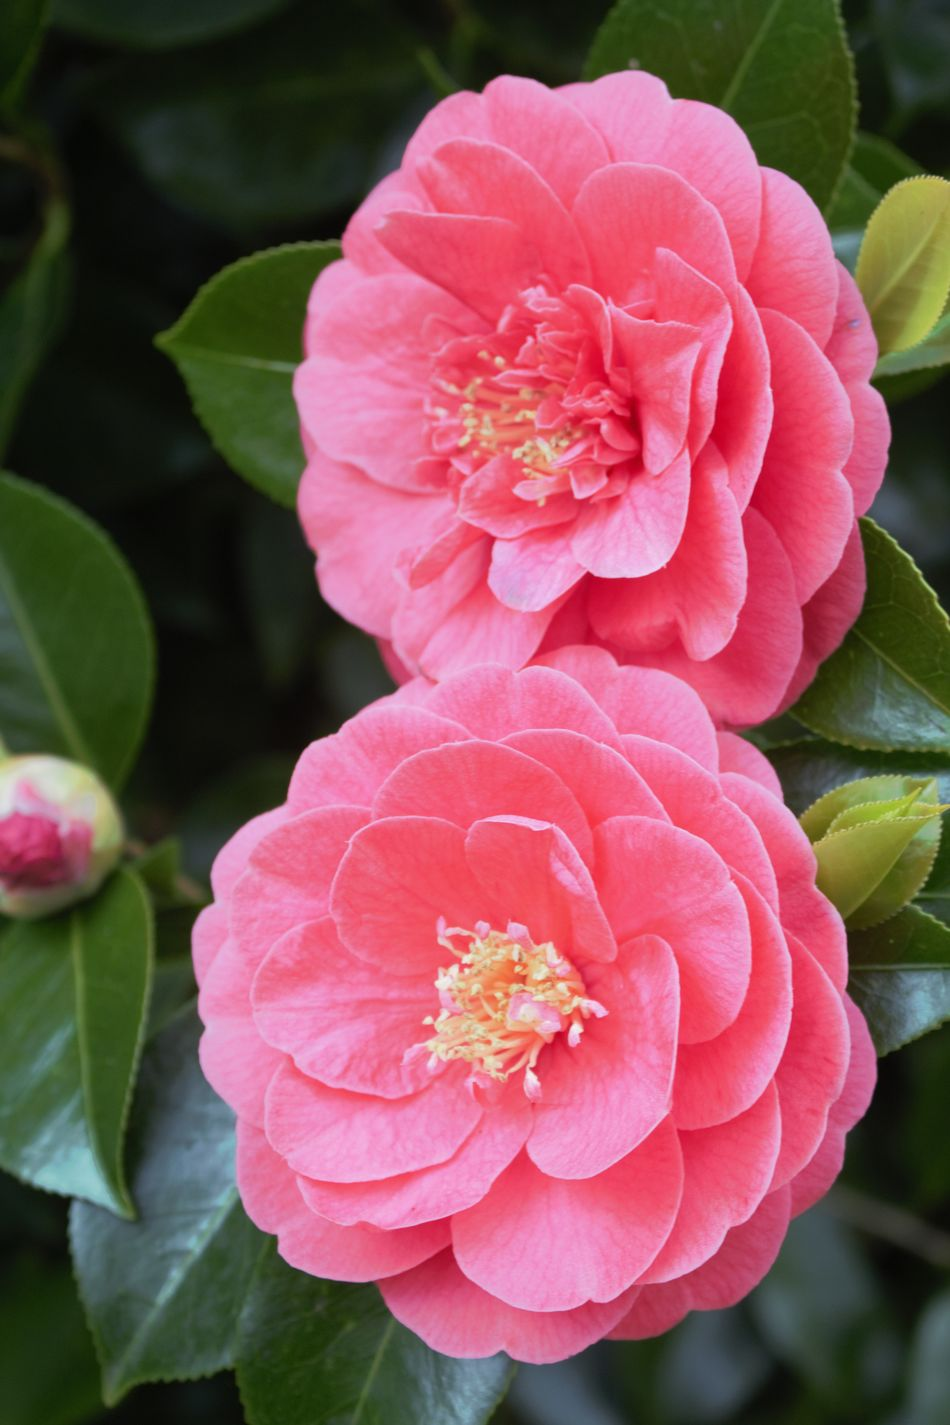 Beauty In Nature Blooming Camellia Close-up Day Flower Flower Bud Flower Head Focus On Foreground Fragility Freshness Growth Leaf Nature No People Outdoors Petal Pink Color Pink Flowers Plant